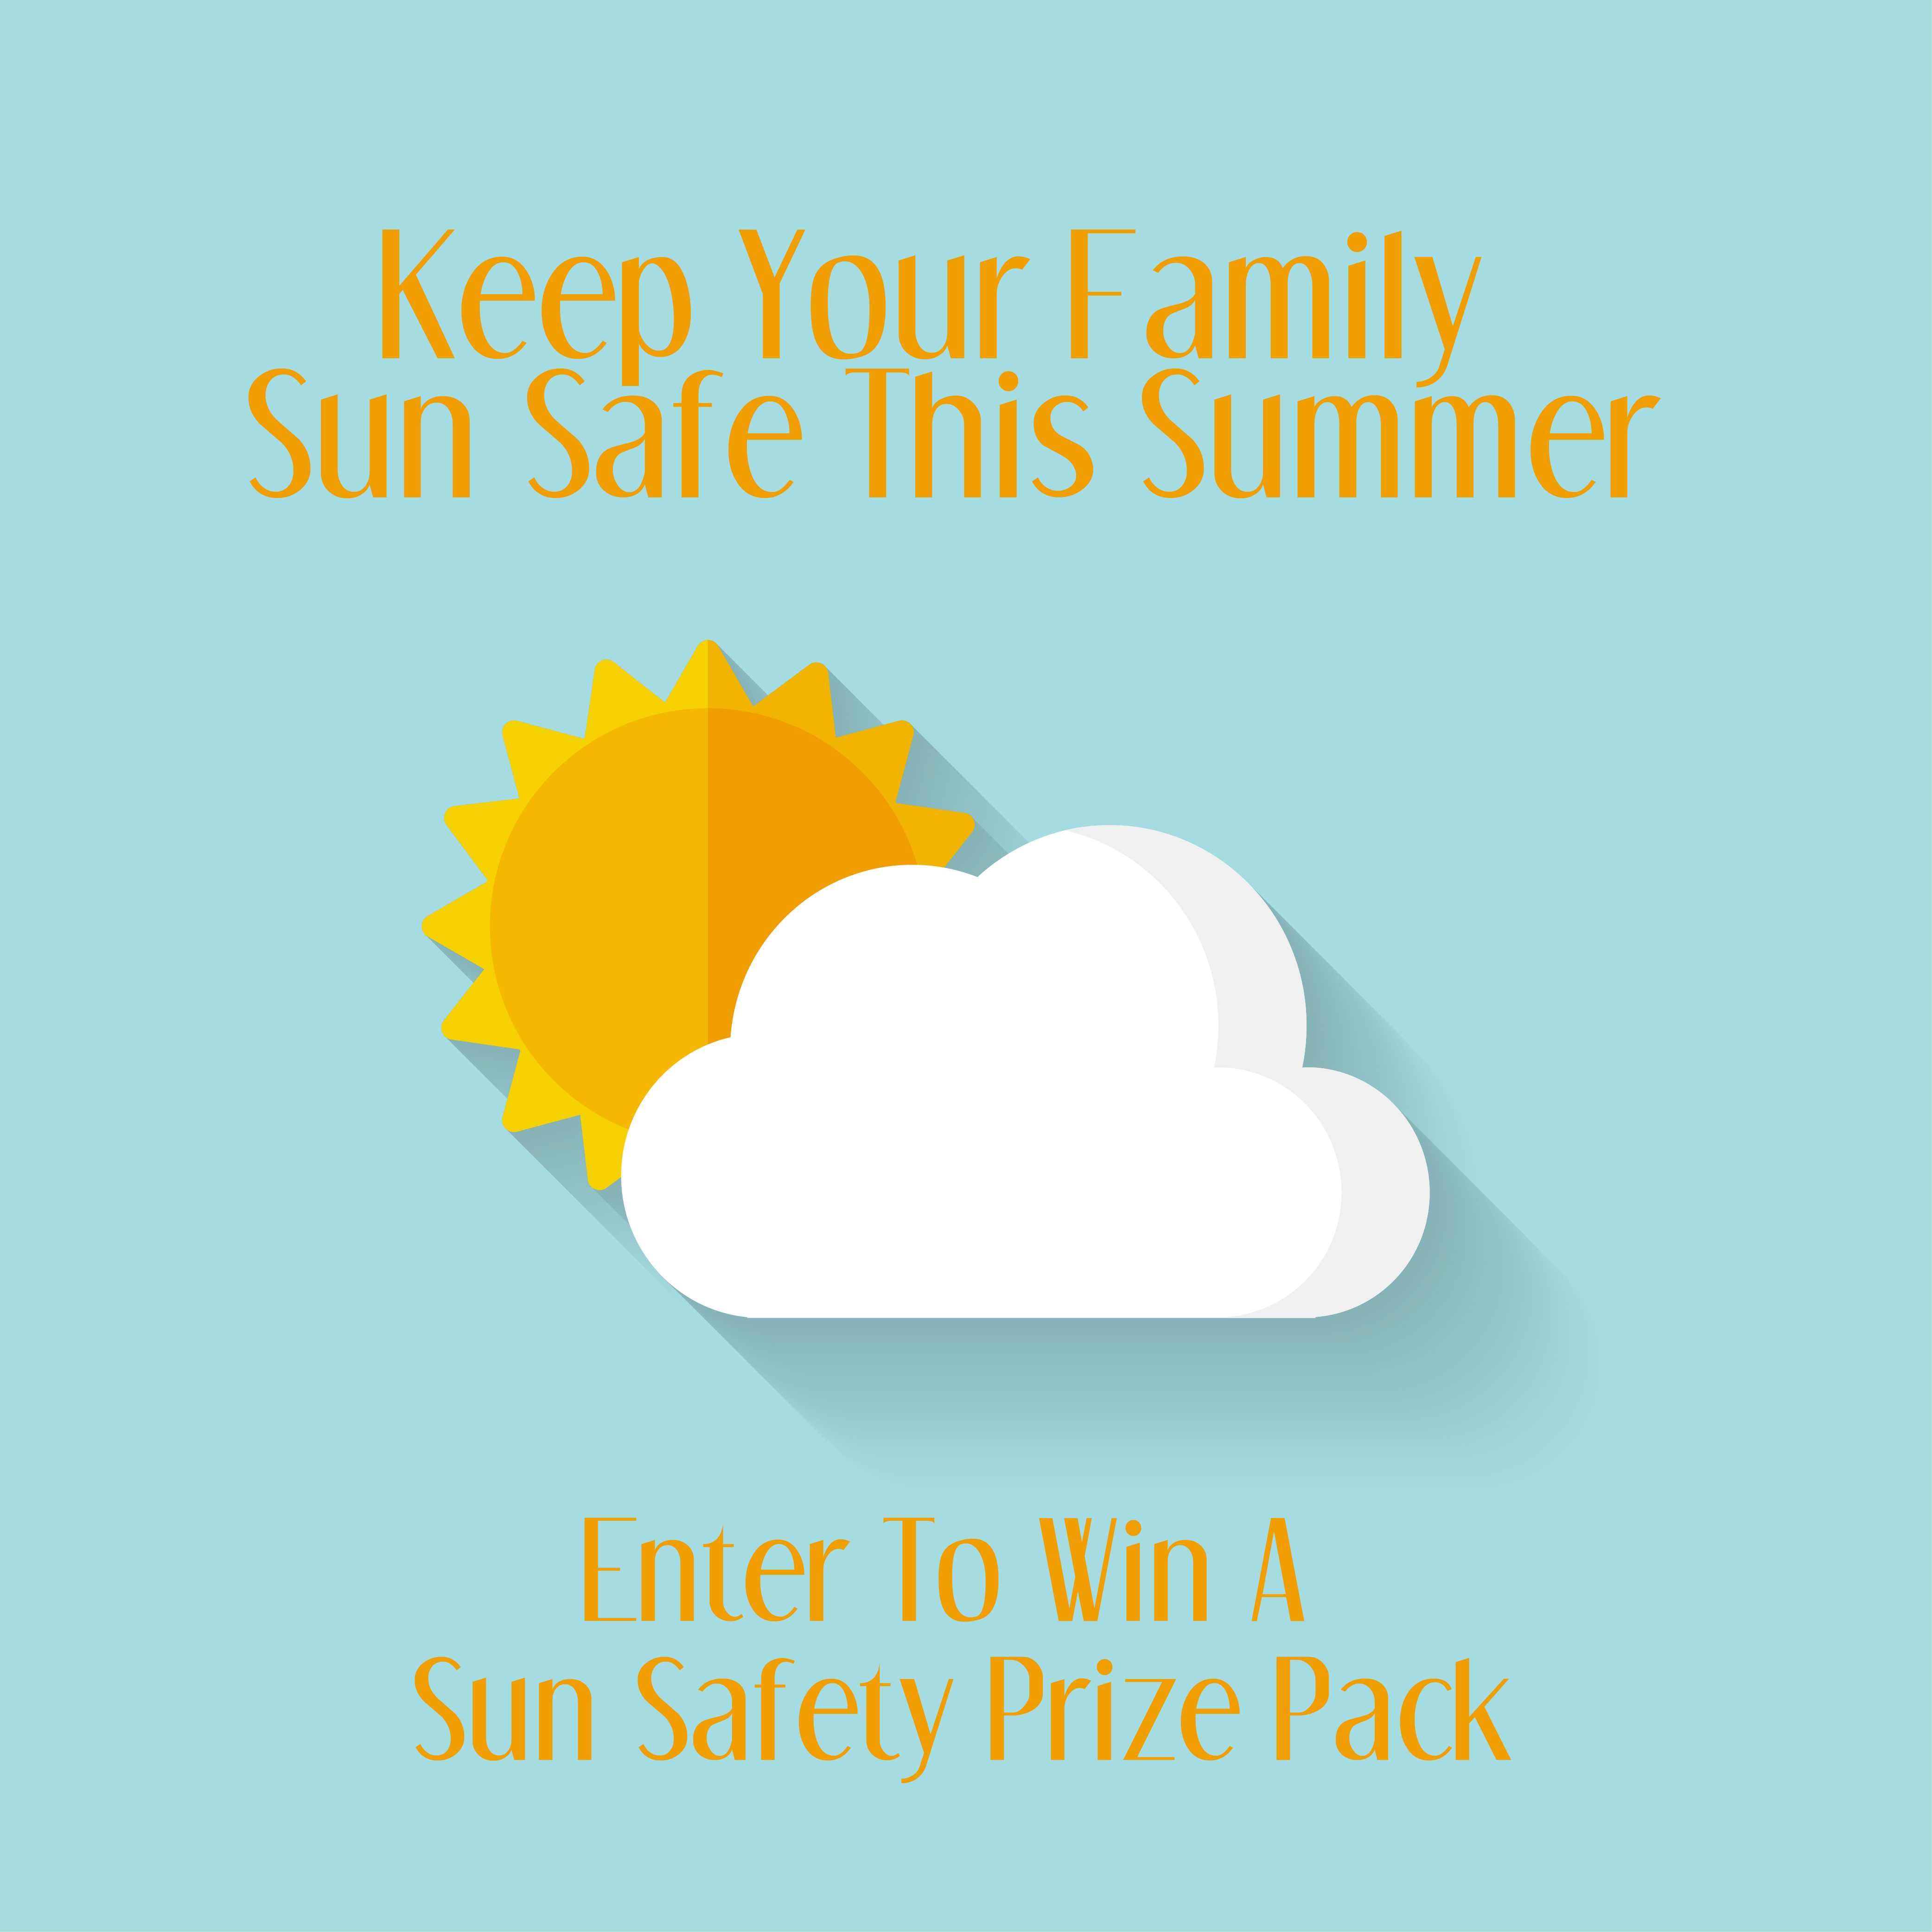 Enter To Win A Sun Safety Prize Pack